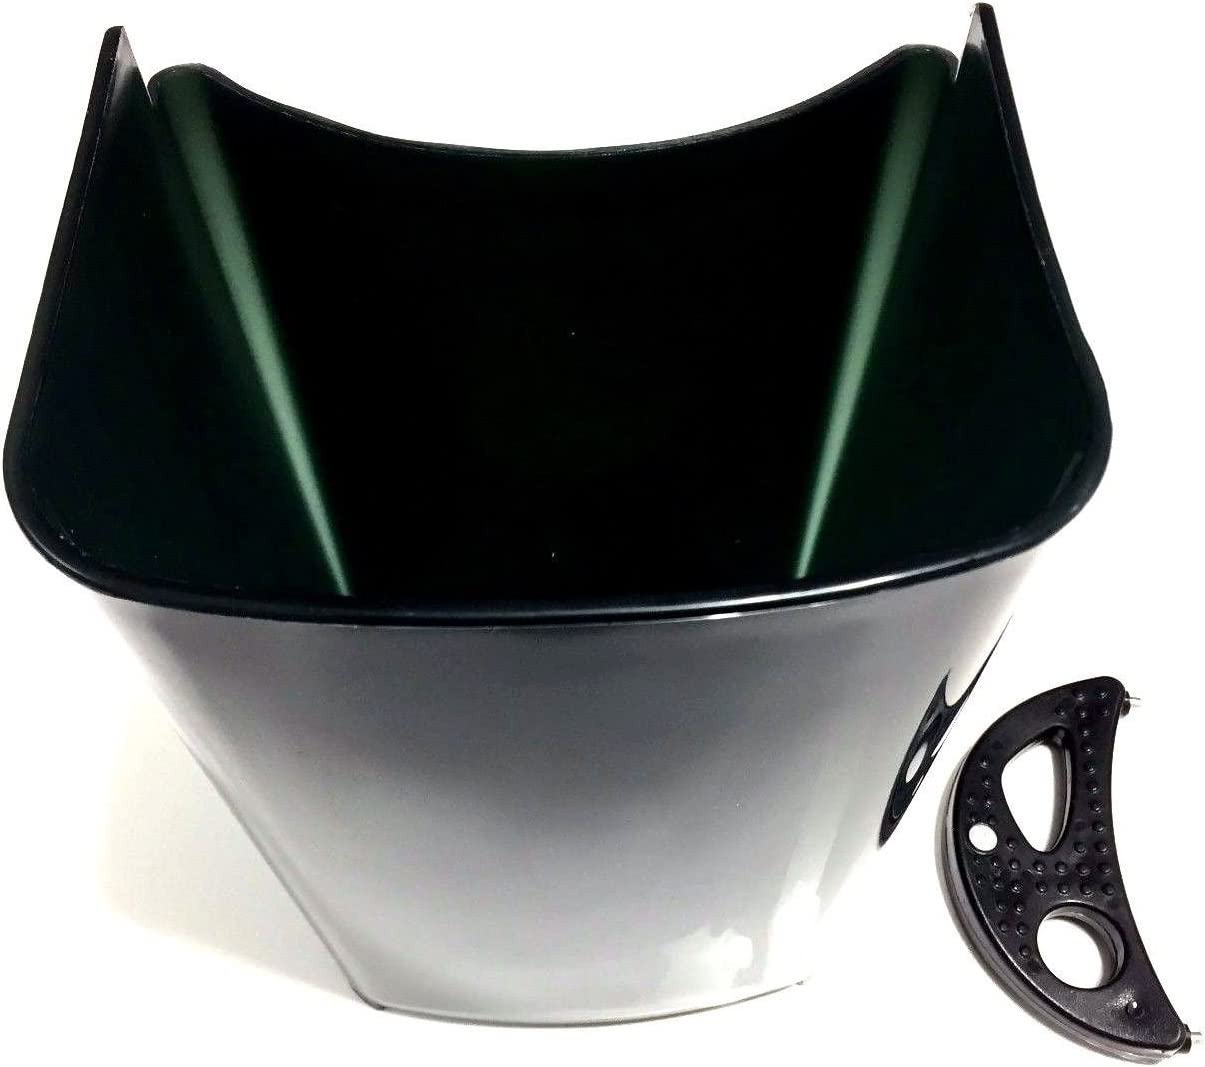 PurrsianKitty Replacement Pulp Collector Basket Bucket & Crescent Tool Combo for Jack Lalanne Power Juicer - READ DESCRIPTION TO MAKE SURE IT FITS!